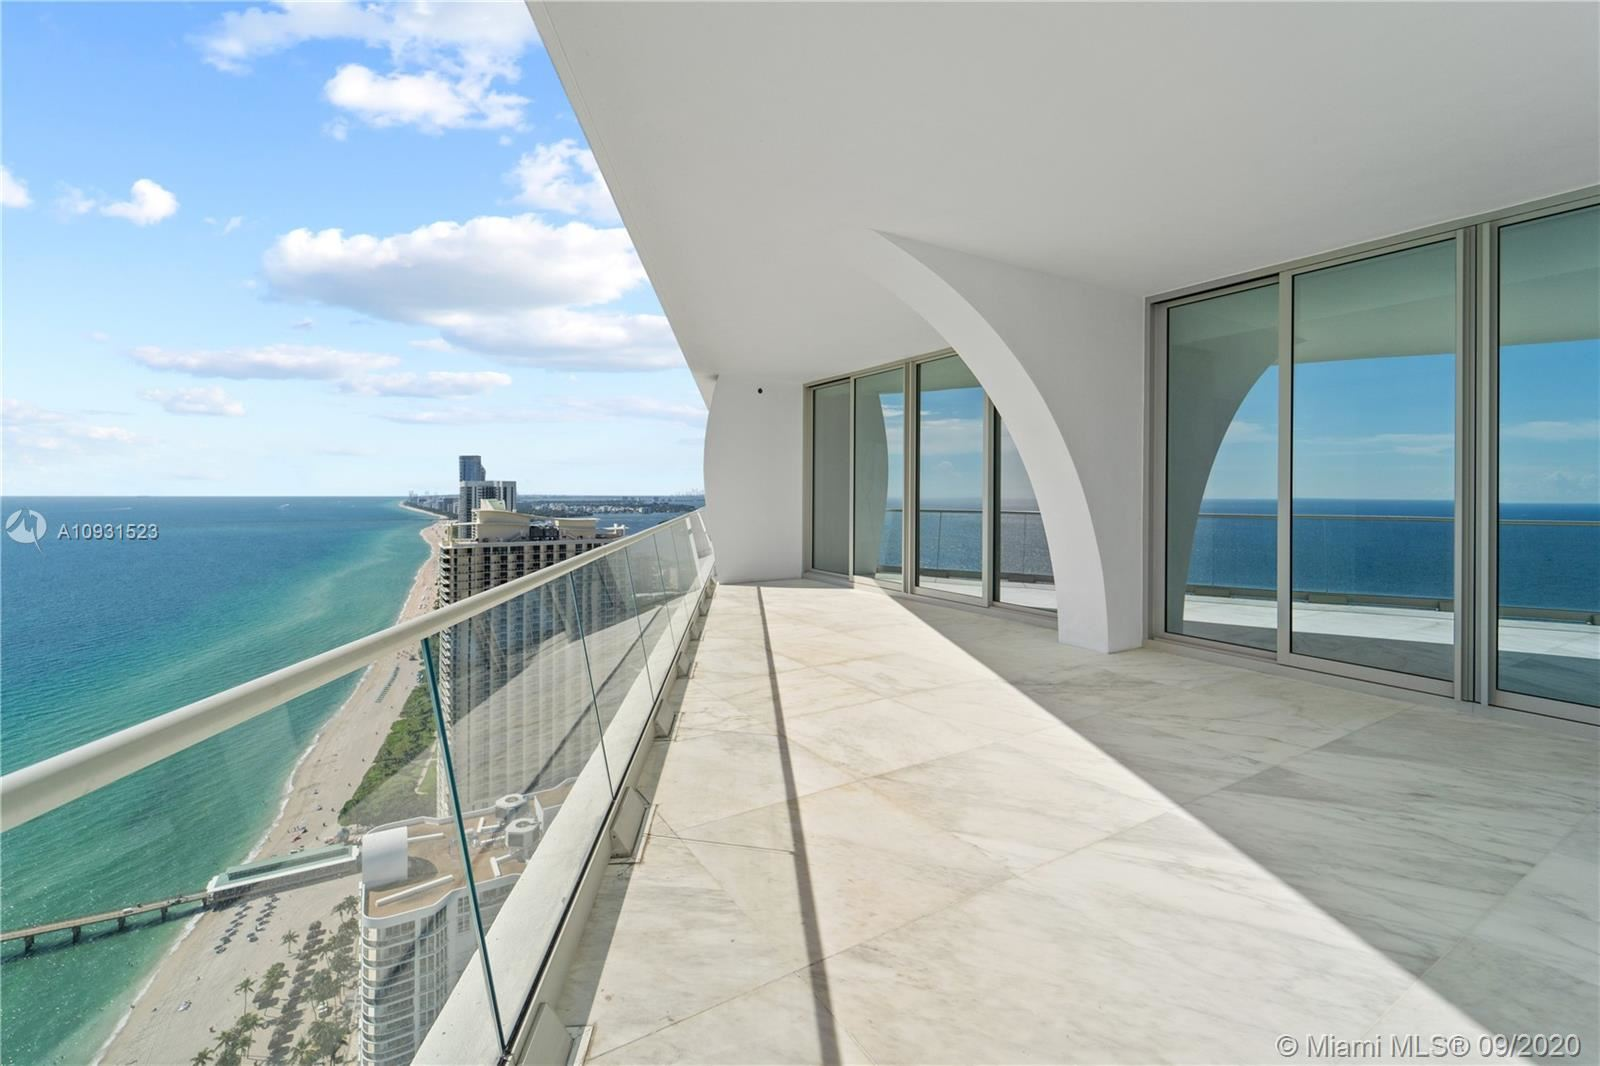 Photo of 16901 Collins Ave #4403, Sunny Isles Beach, FL 33160 (MLS # A10931523)